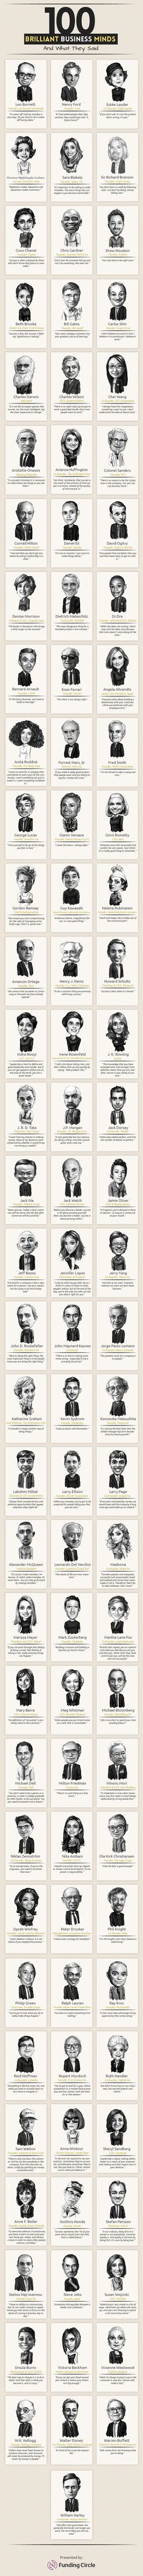 Inspirational Quotes From 100 Famous Business Leaders (Infographic) - @entmagazine